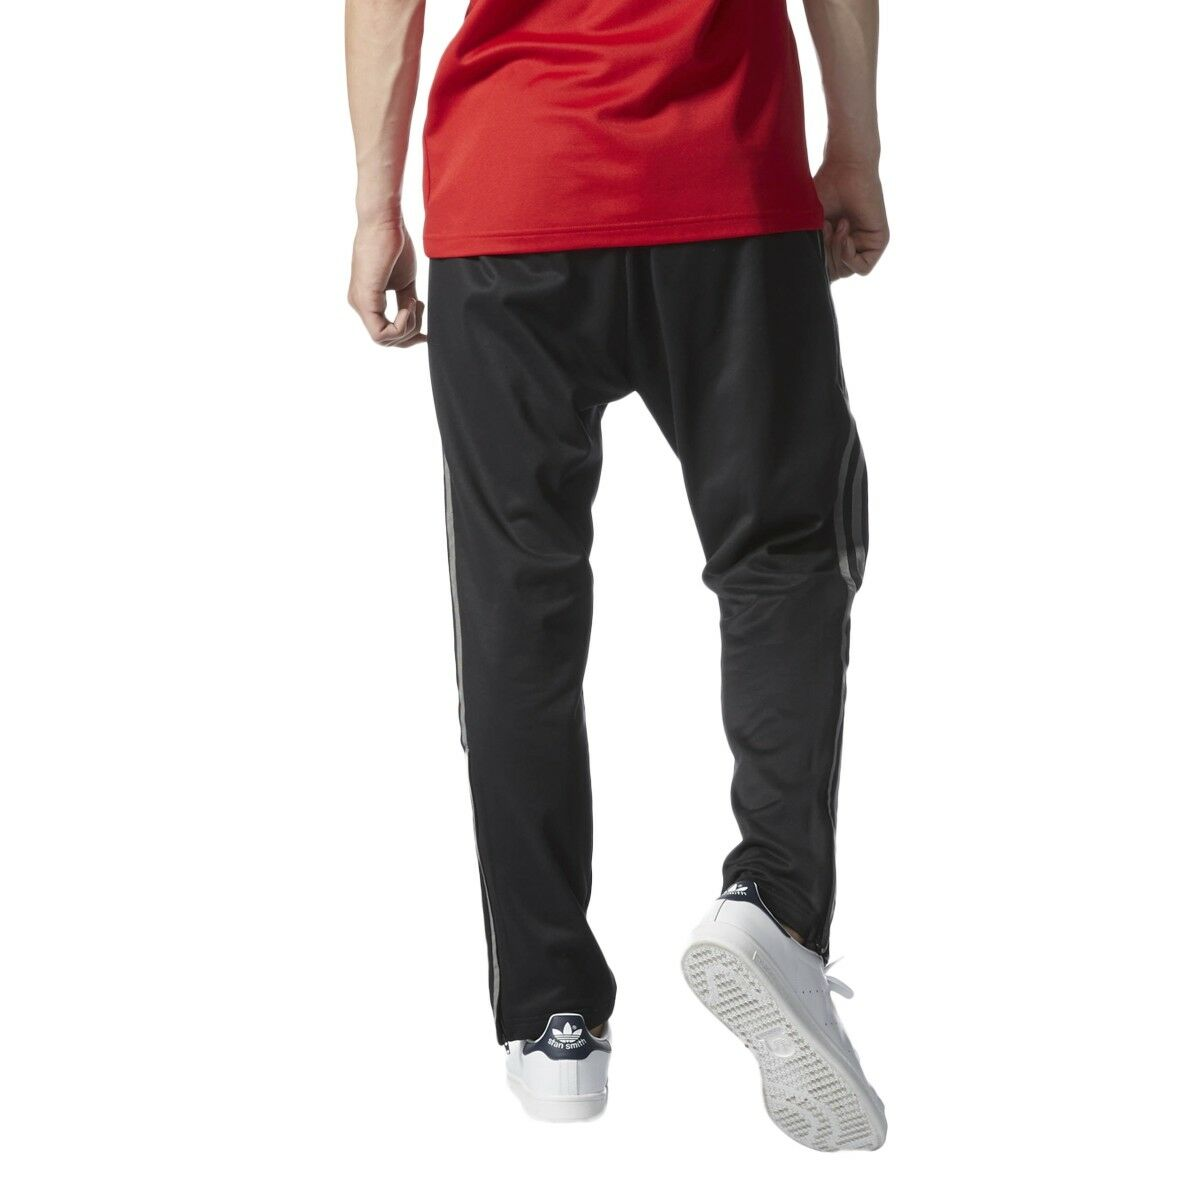 Adidas O Force Exclusive Id 96 Track Pants Sweatpants Black ay9259